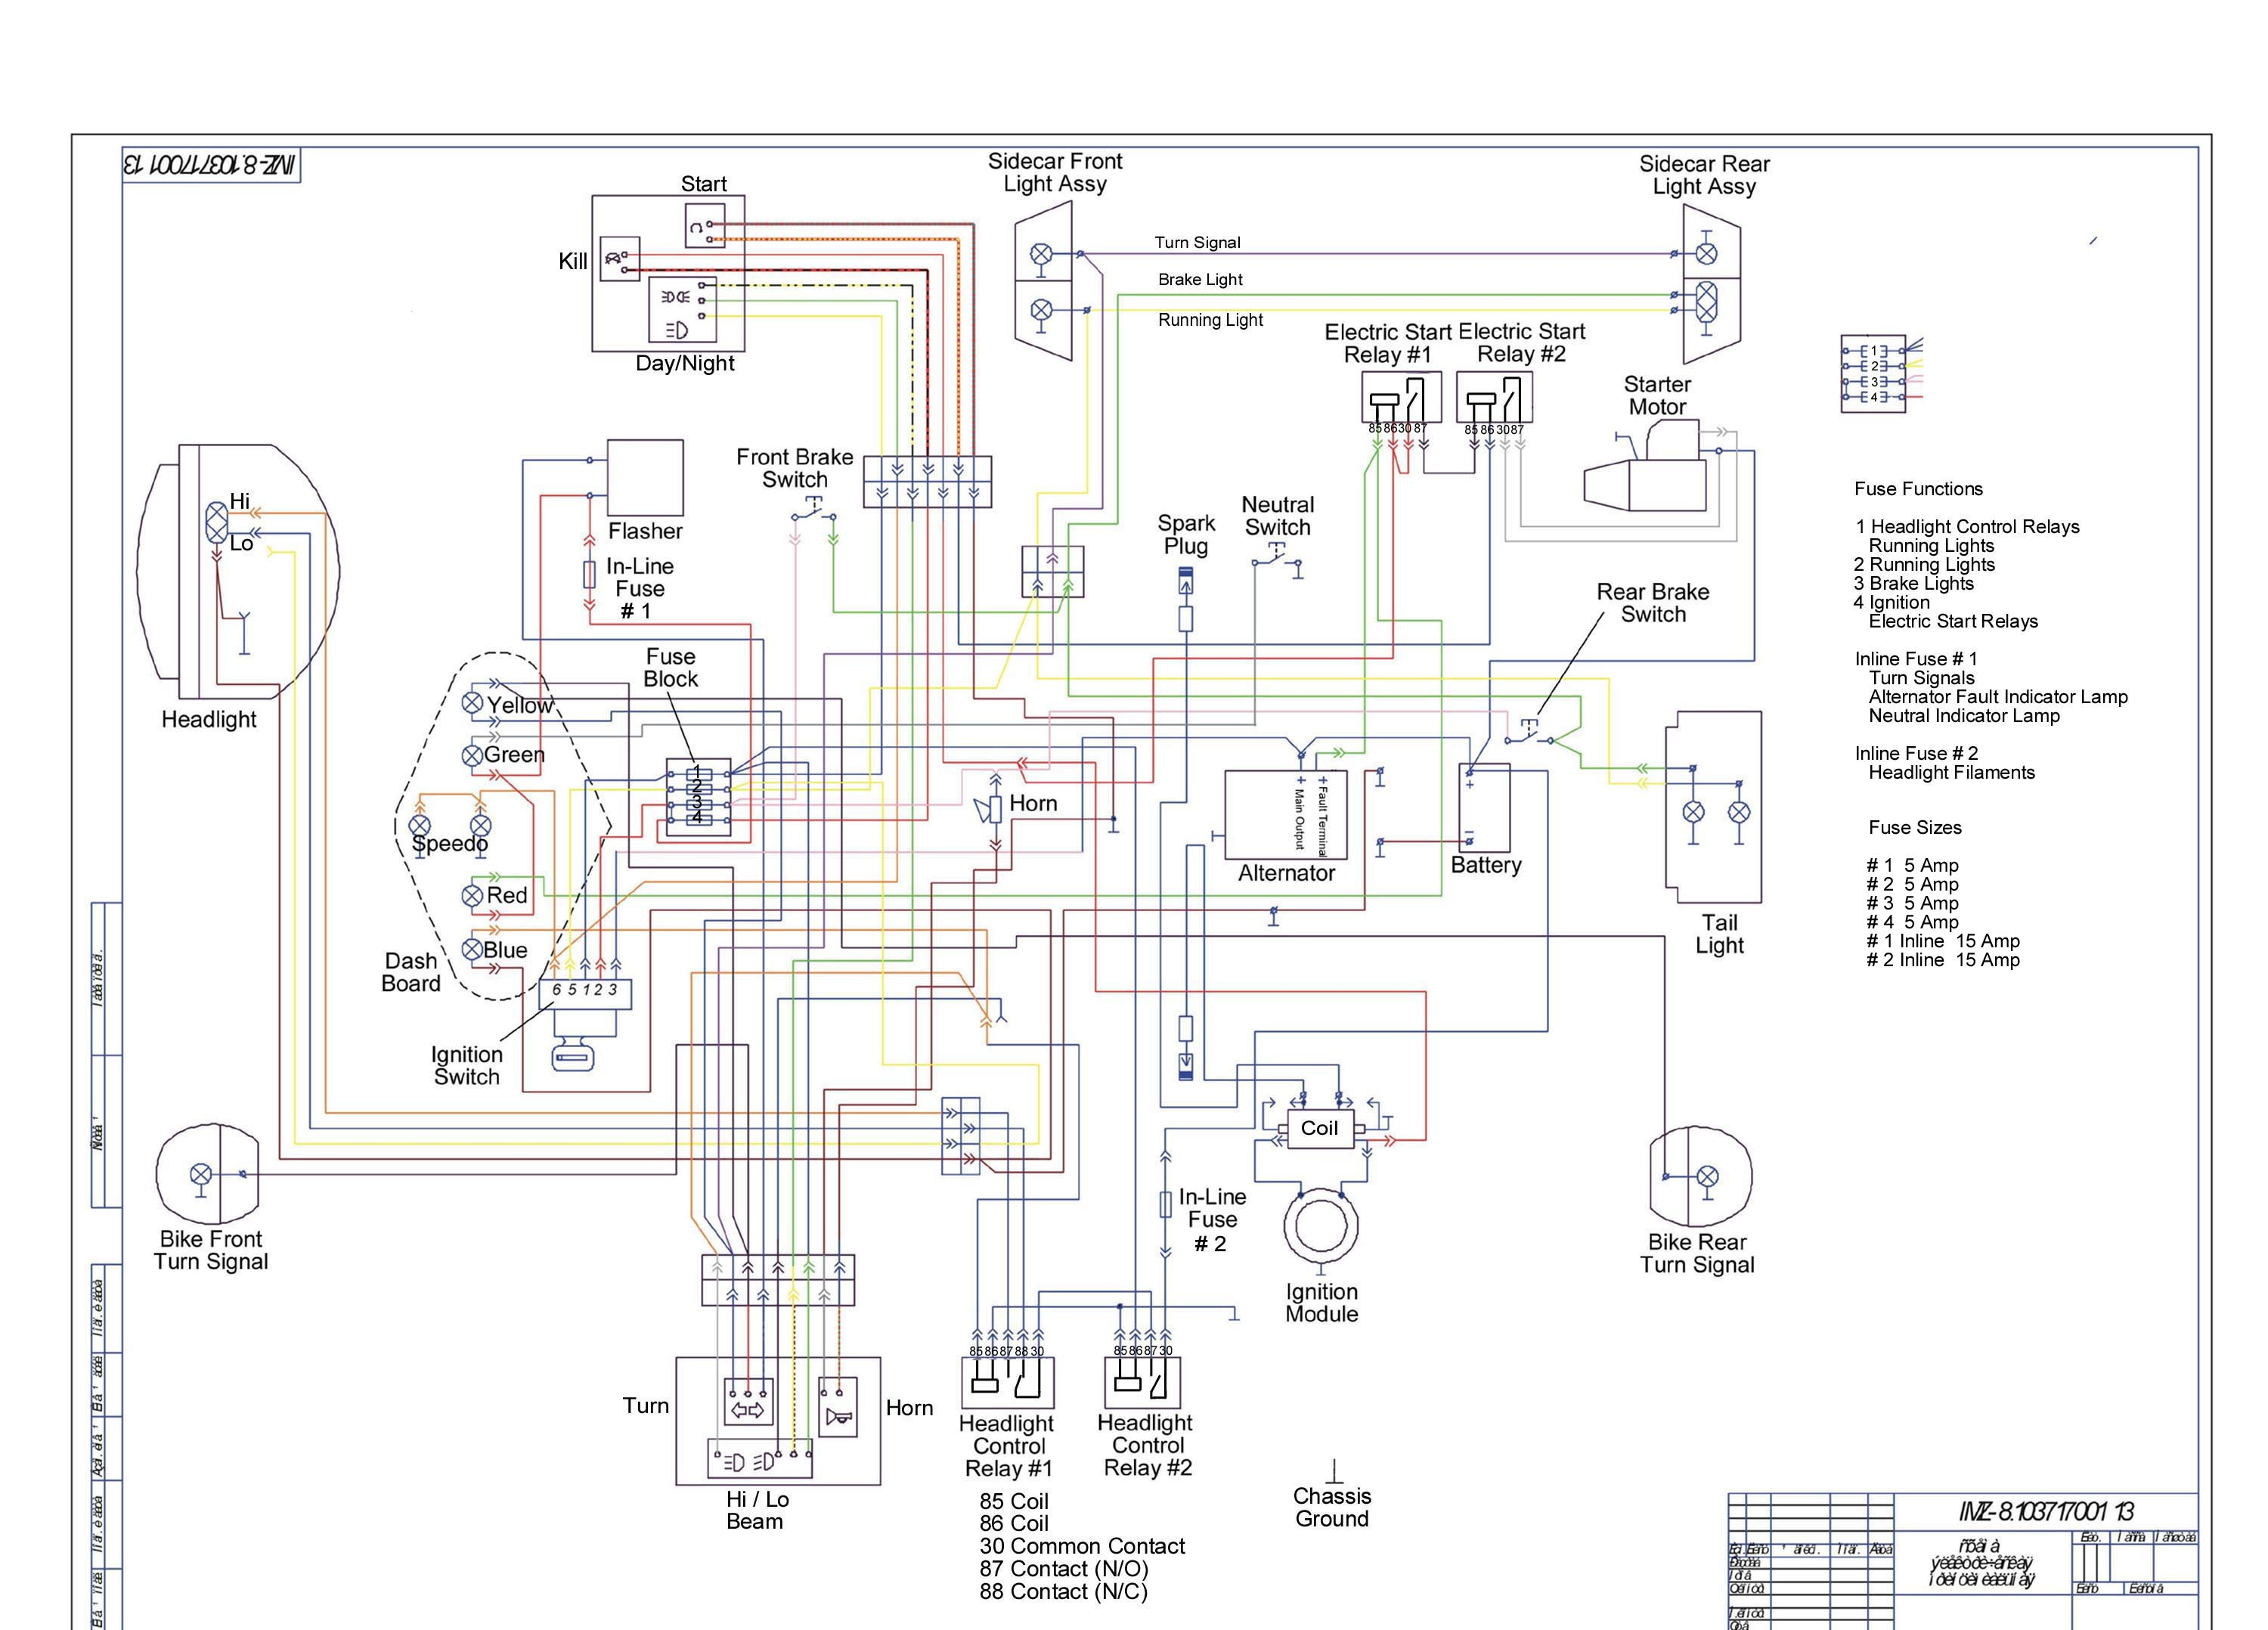 Cat 3406e Ecm Wiring Diagram Cummins N14 ECM Wiring